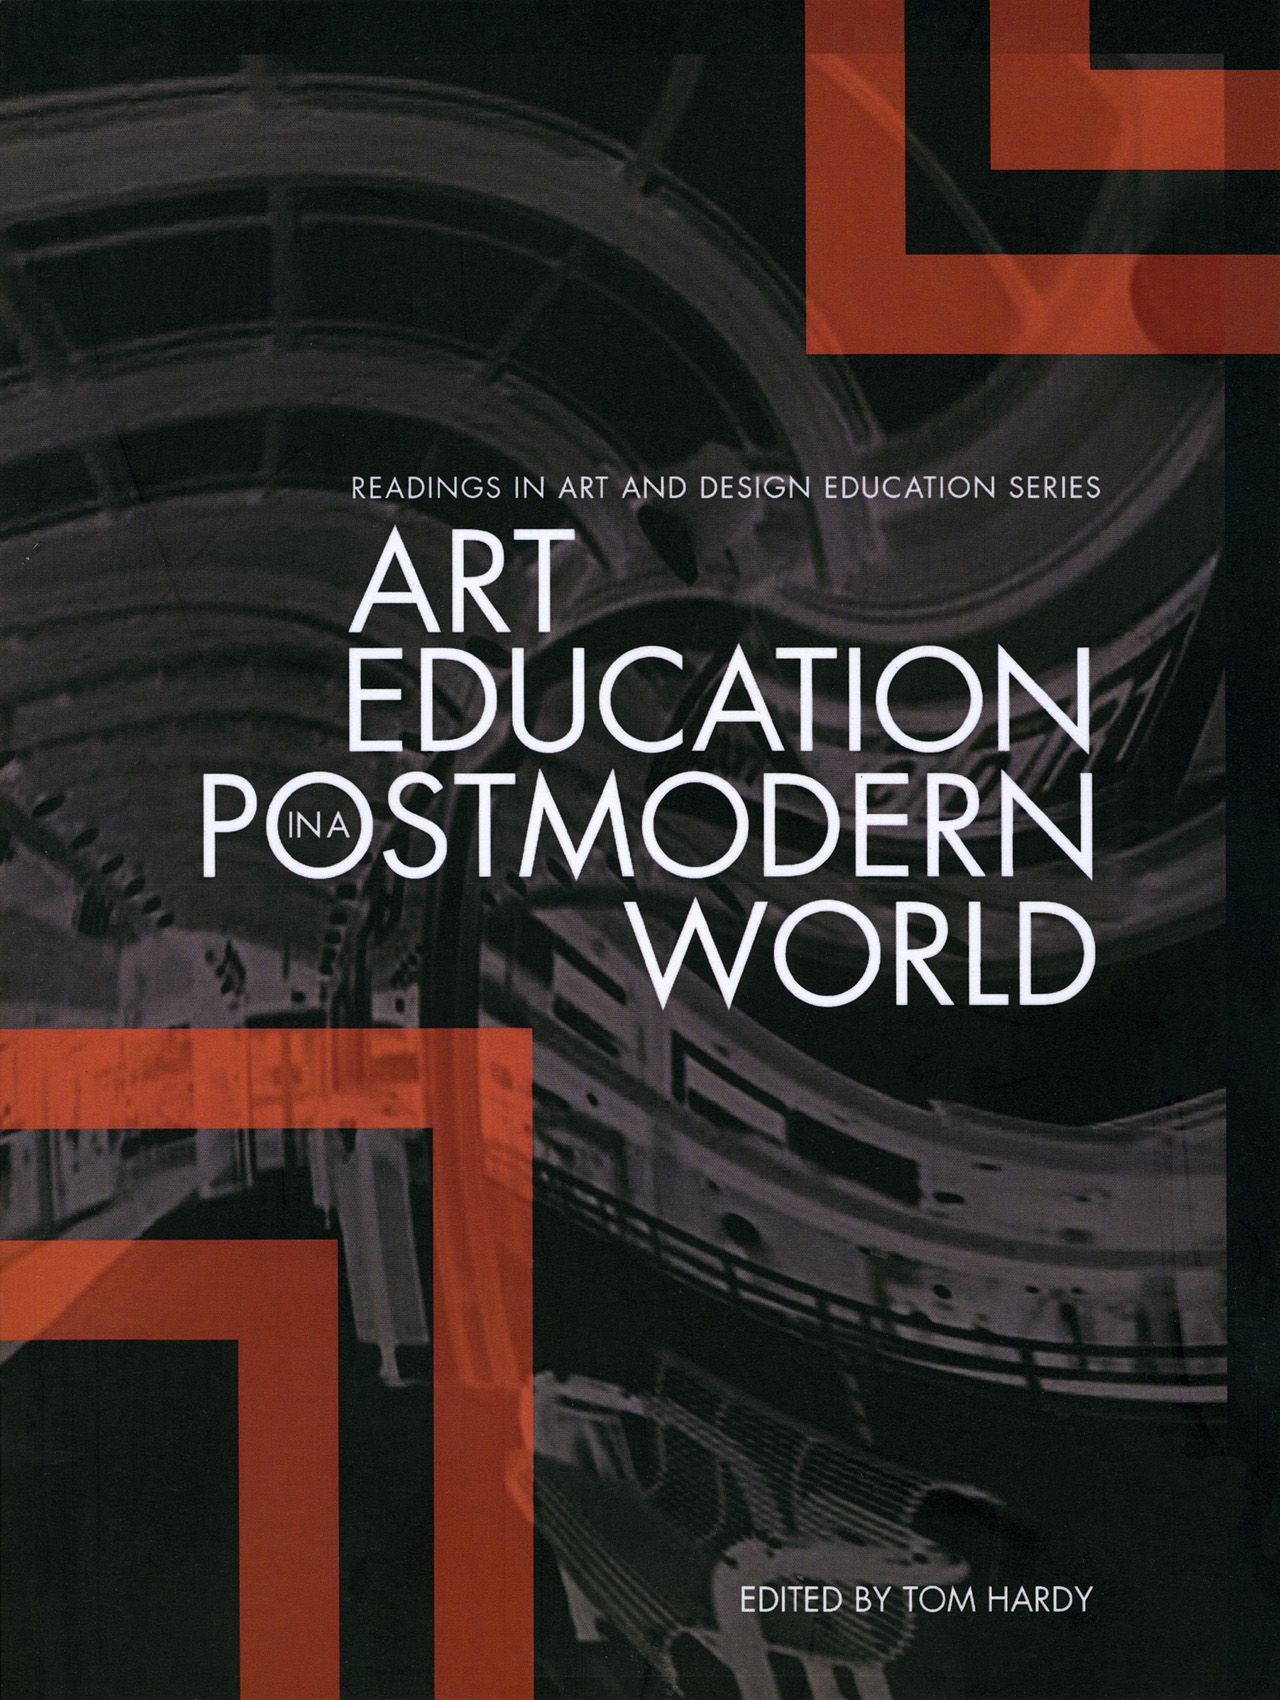 an overview of postmodernism essay Postmodernism essays: over 180,000 postmodernism essays, postmodernism term papers, postmodernism research paper, book reports 184 990 essays, term and research.